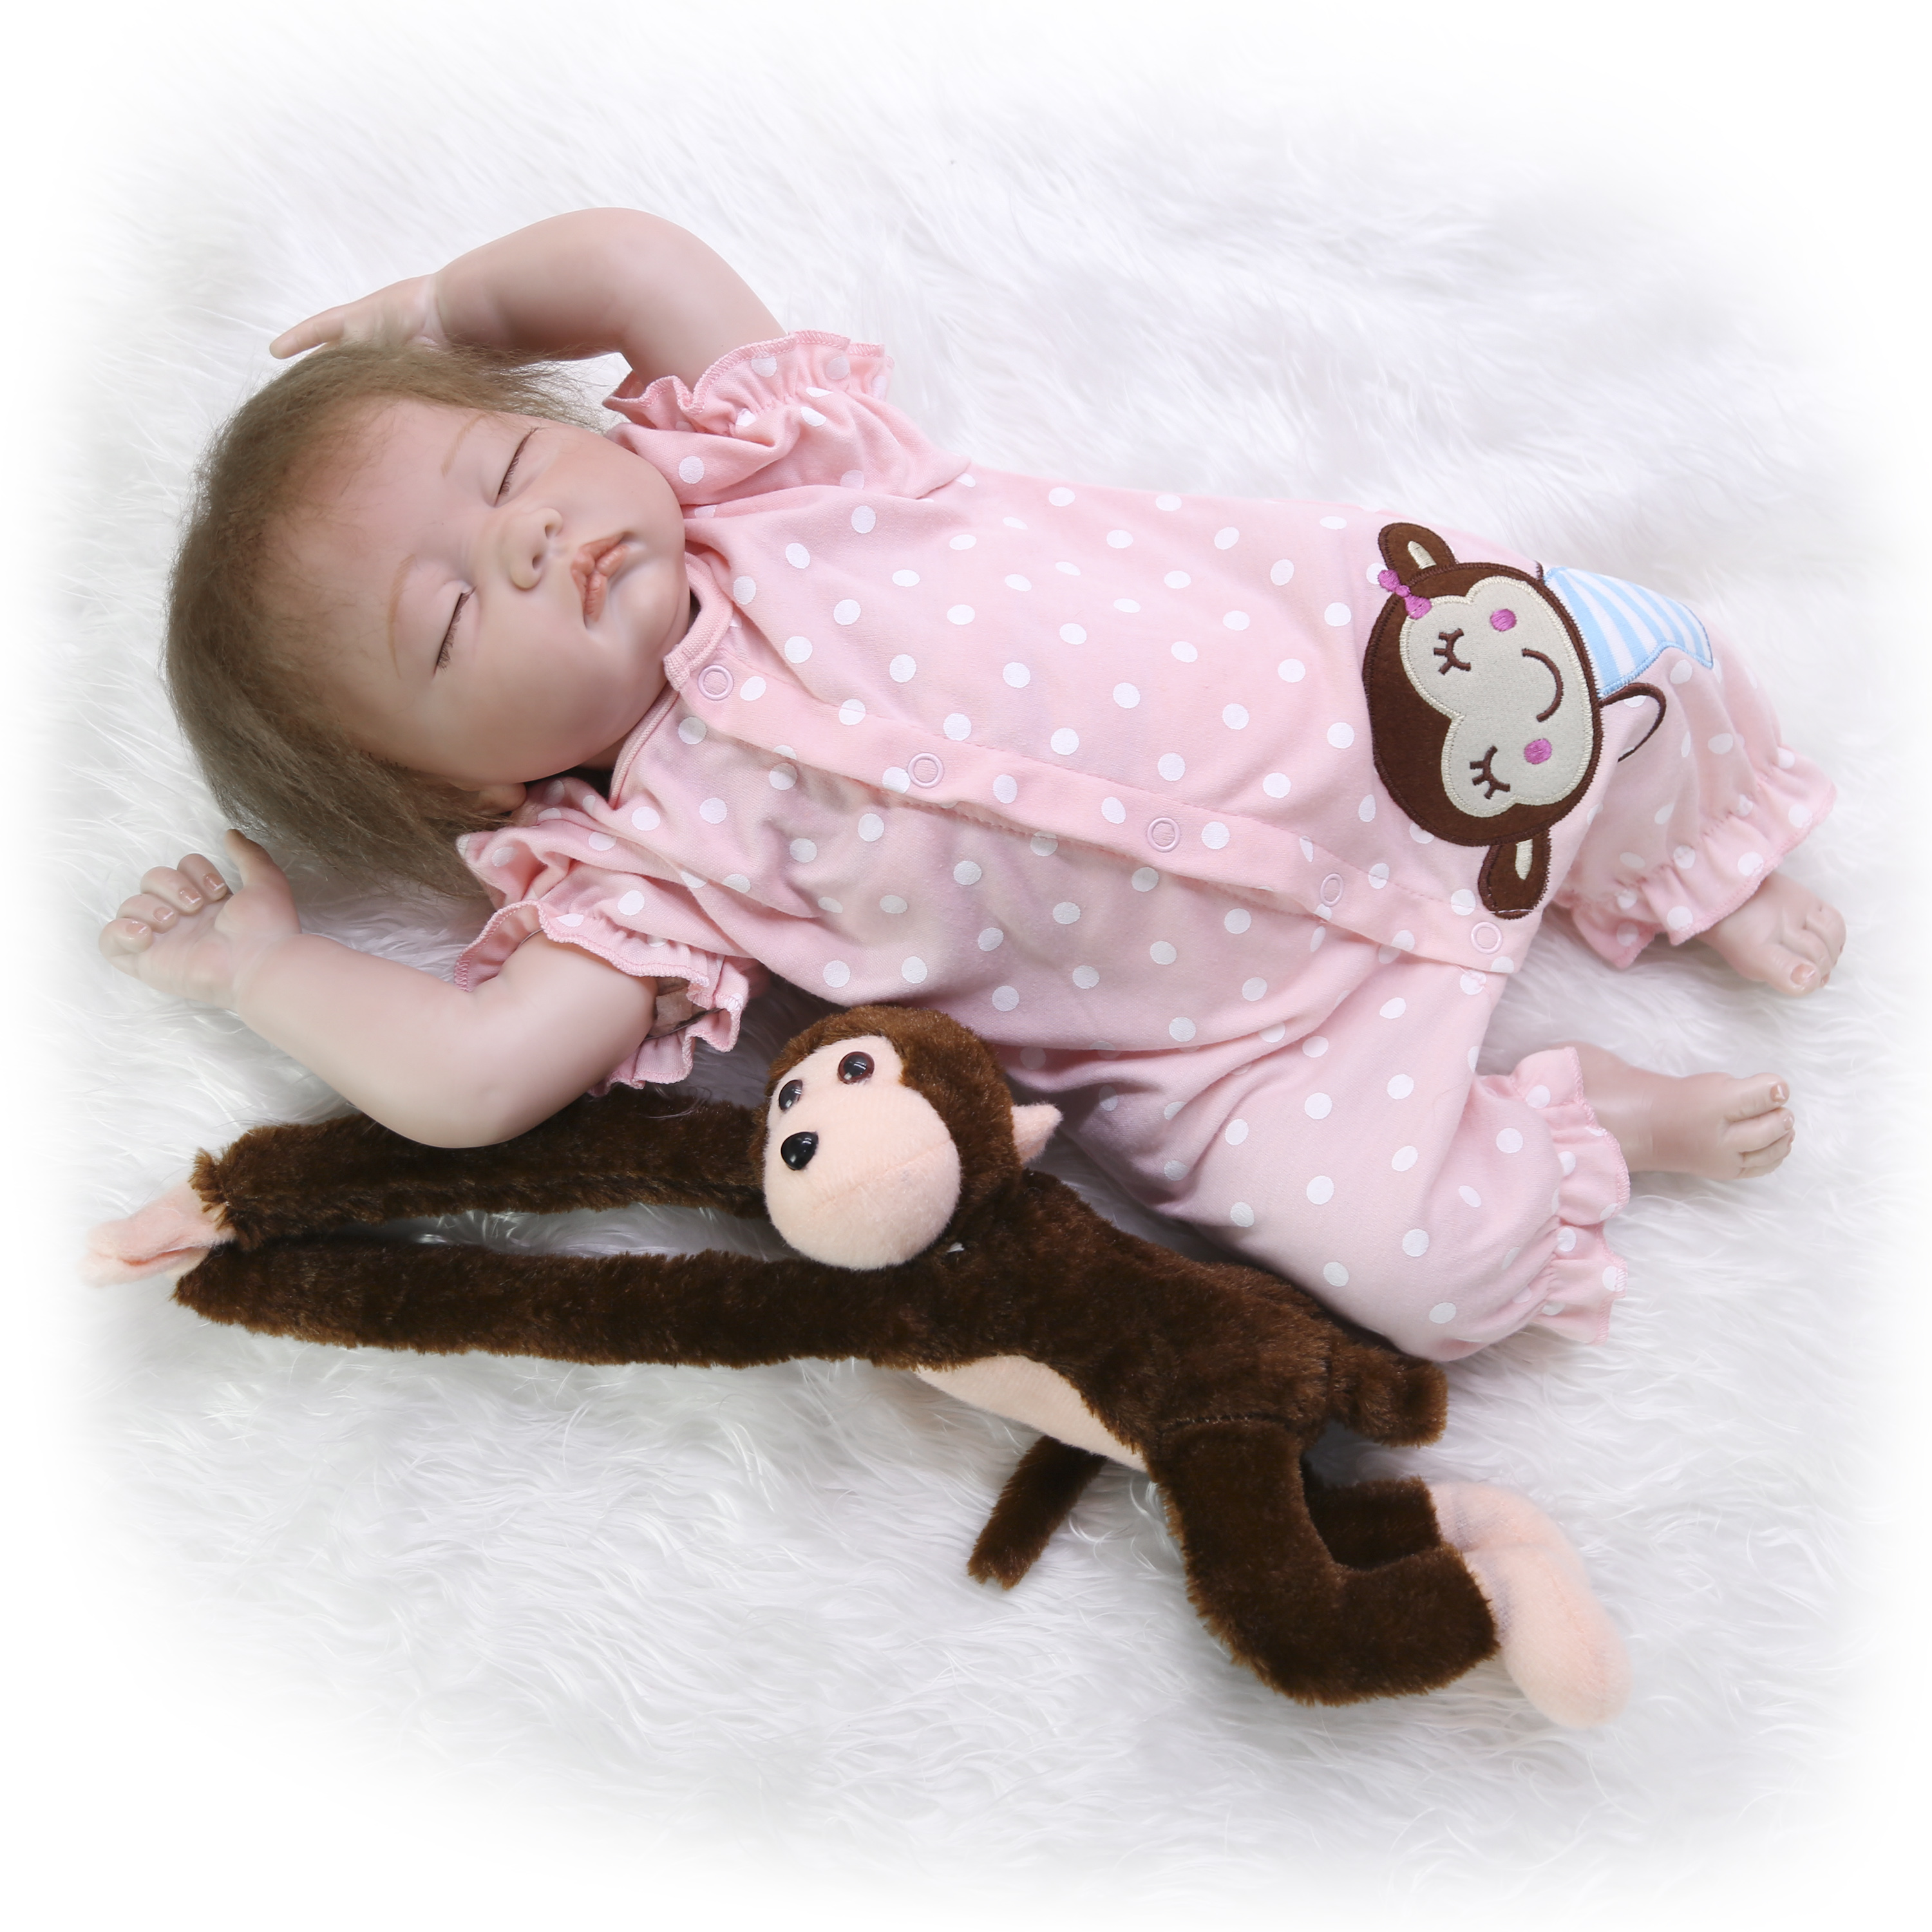 Real Lifelike Reborn Baby Doll 20 Inch Sleeping Princess Girl Babies Silicone Newborn Doll Toy With Curved Mohair Kids Playmate-in Muñecas from Juguetes y pasatiempos    2